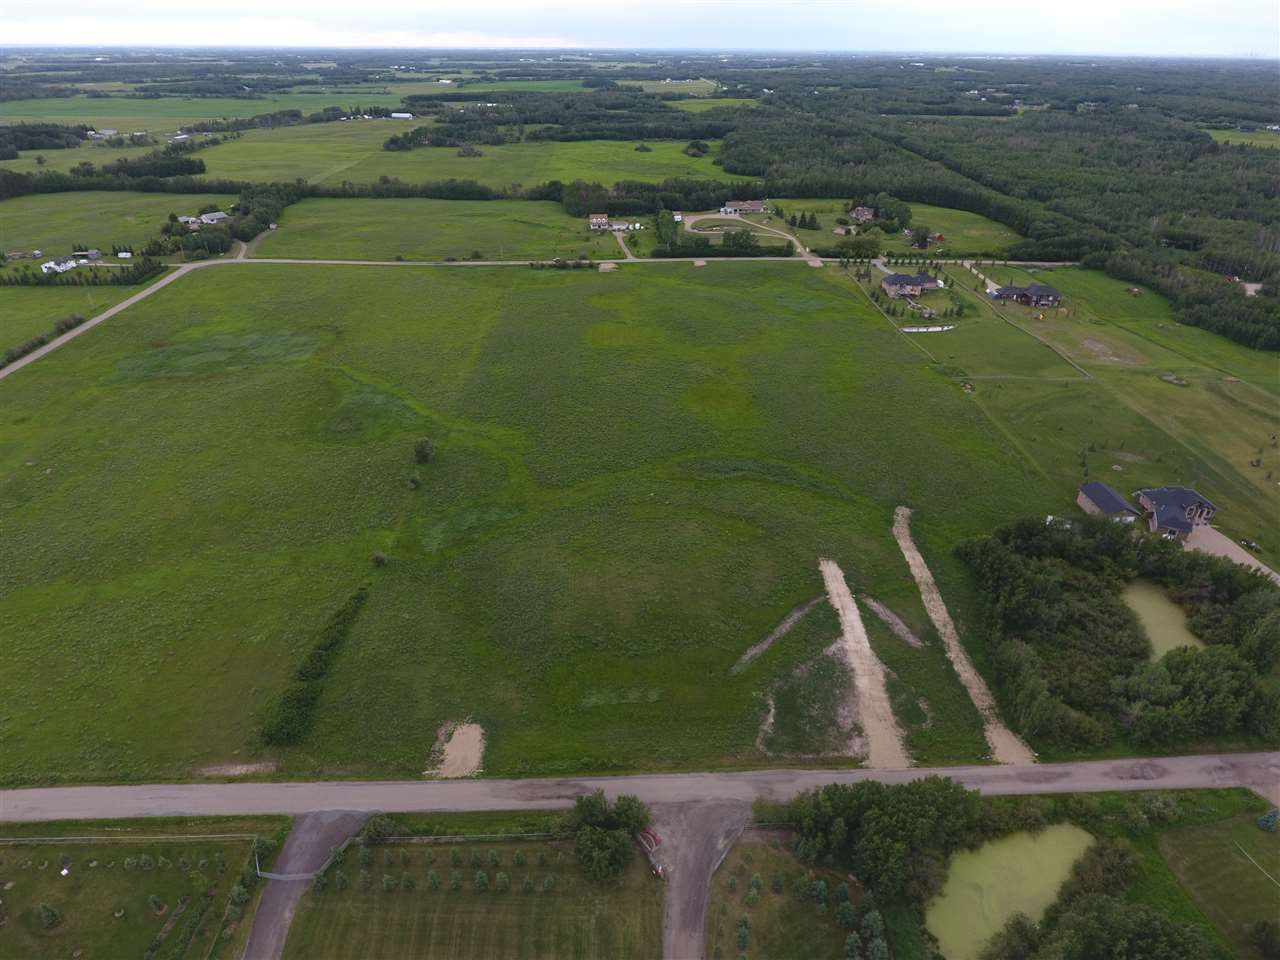 Main Photo: 22111 Twp Rd: Rural Leduc County Rural Land/Vacant Lot for sale : MLS®# E4118449